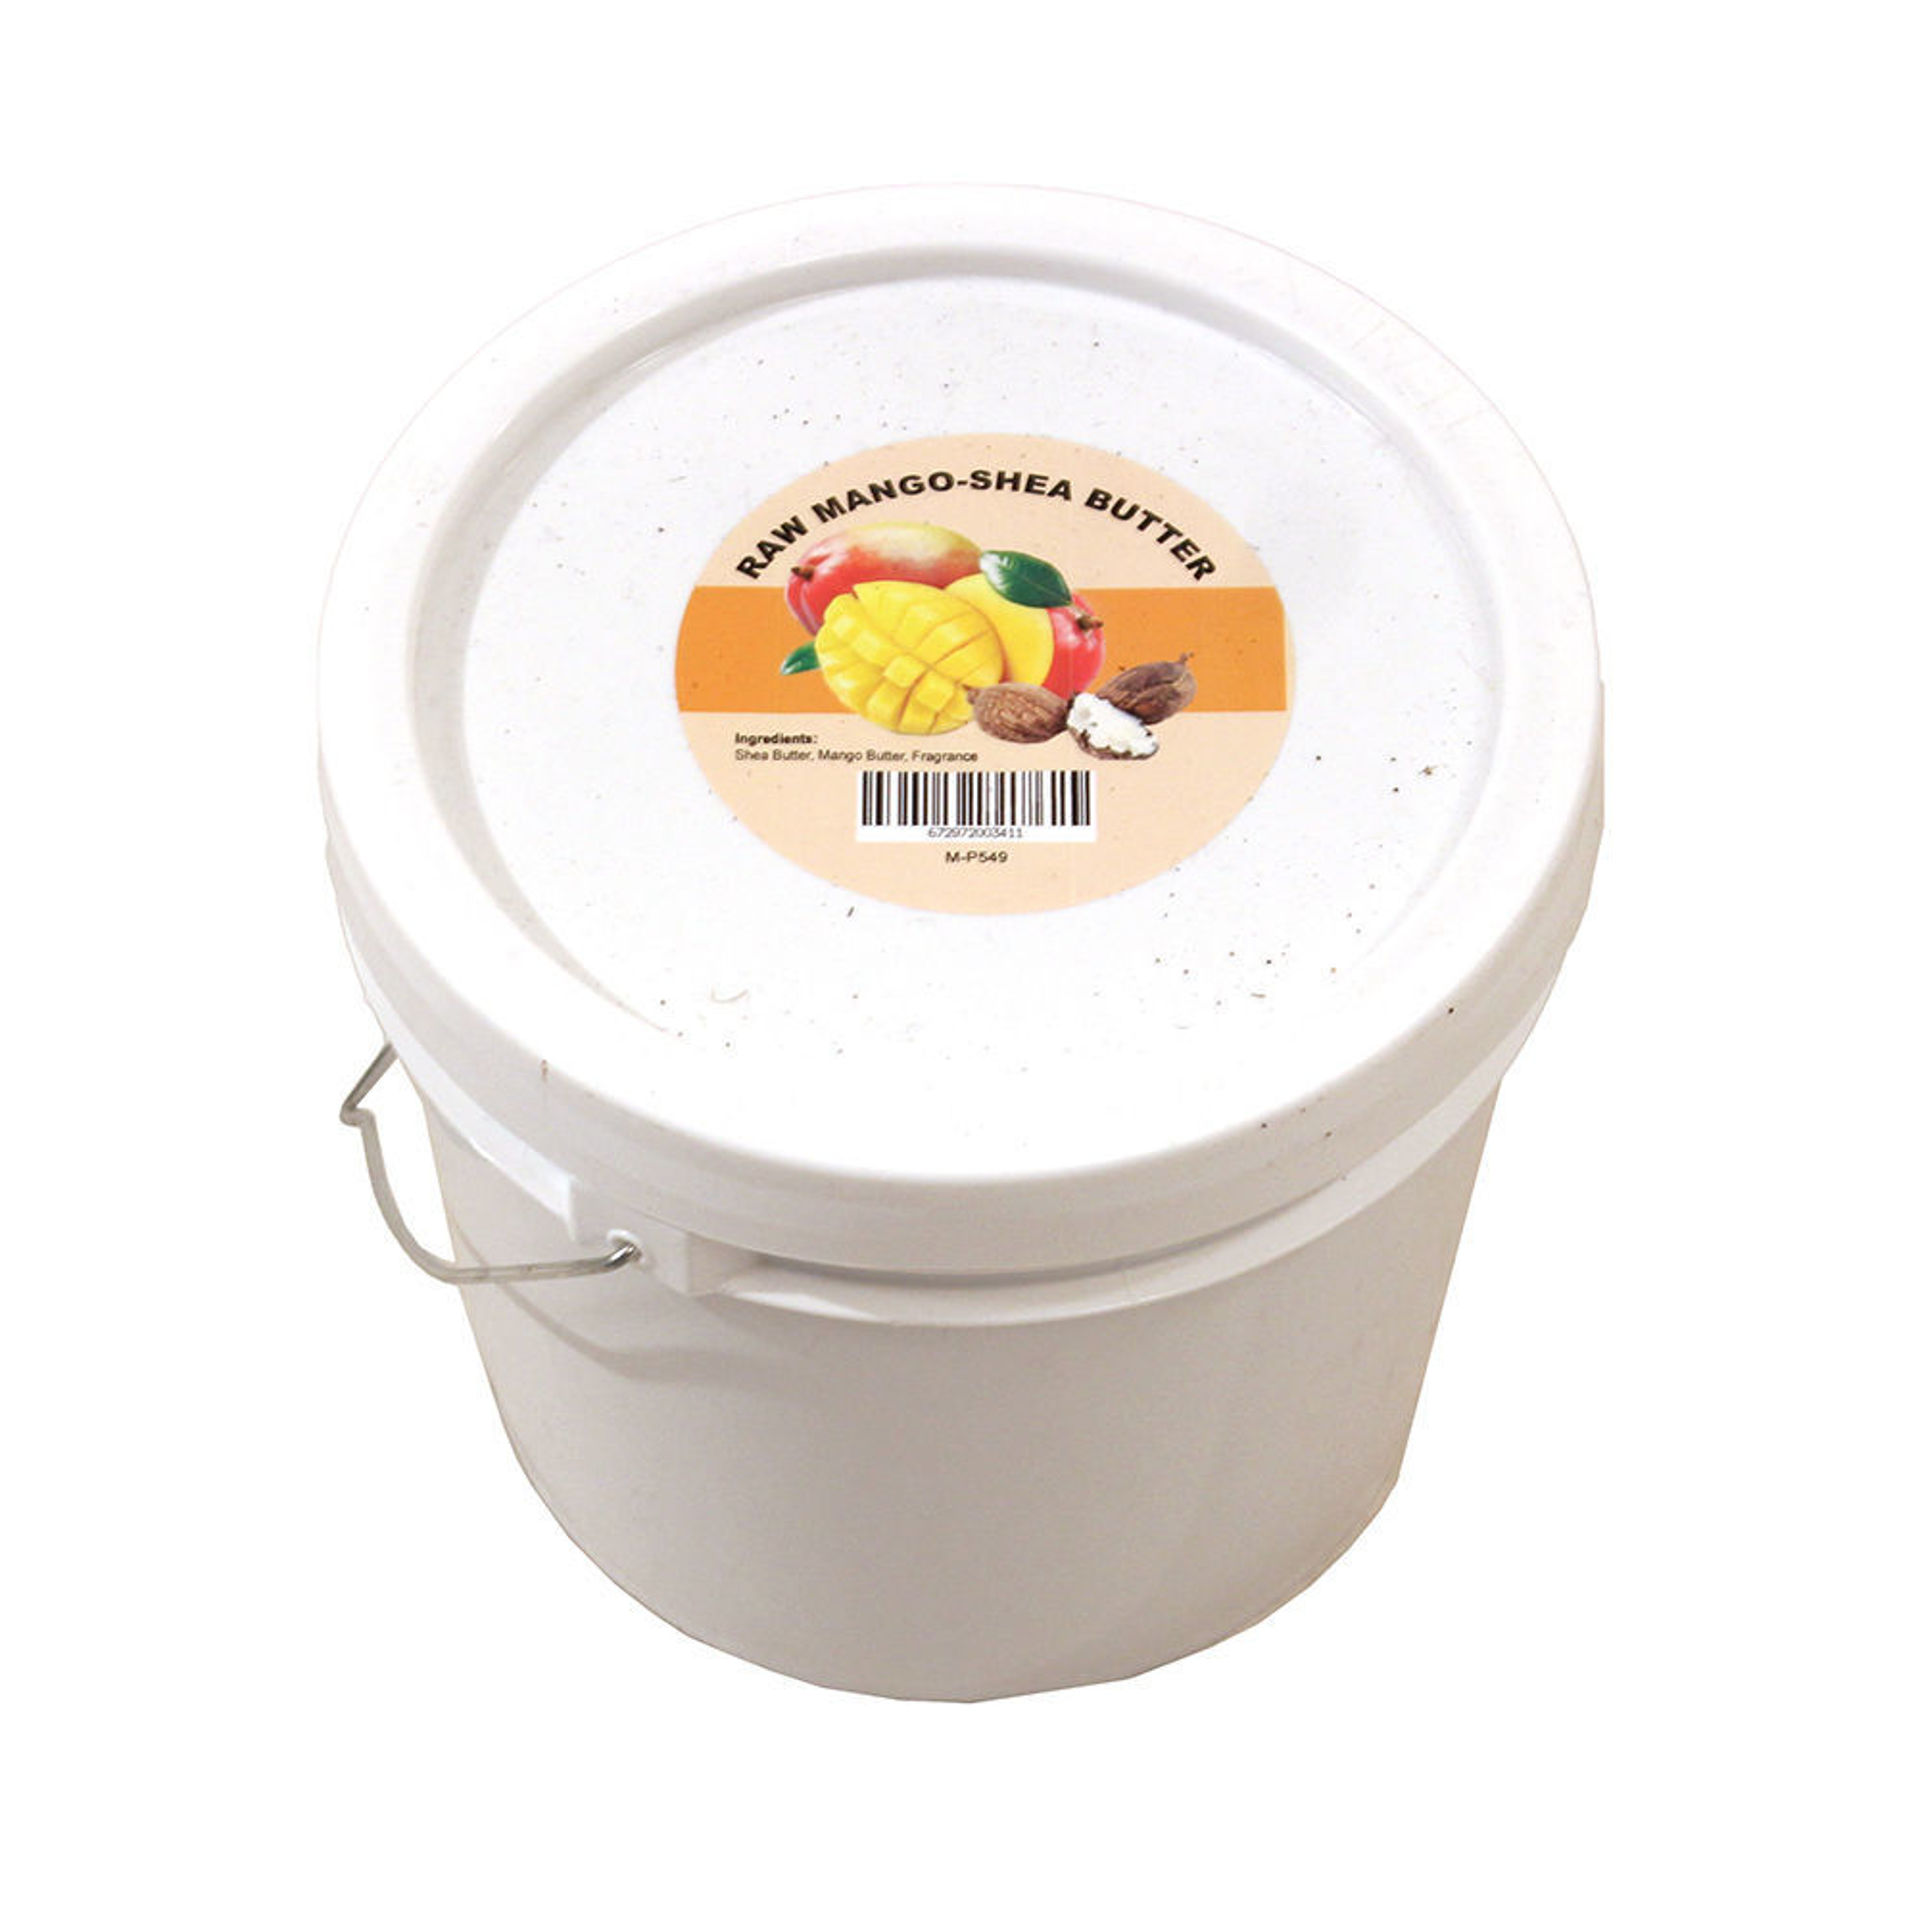 Picture of Raw Mango-Shea Butter - XL